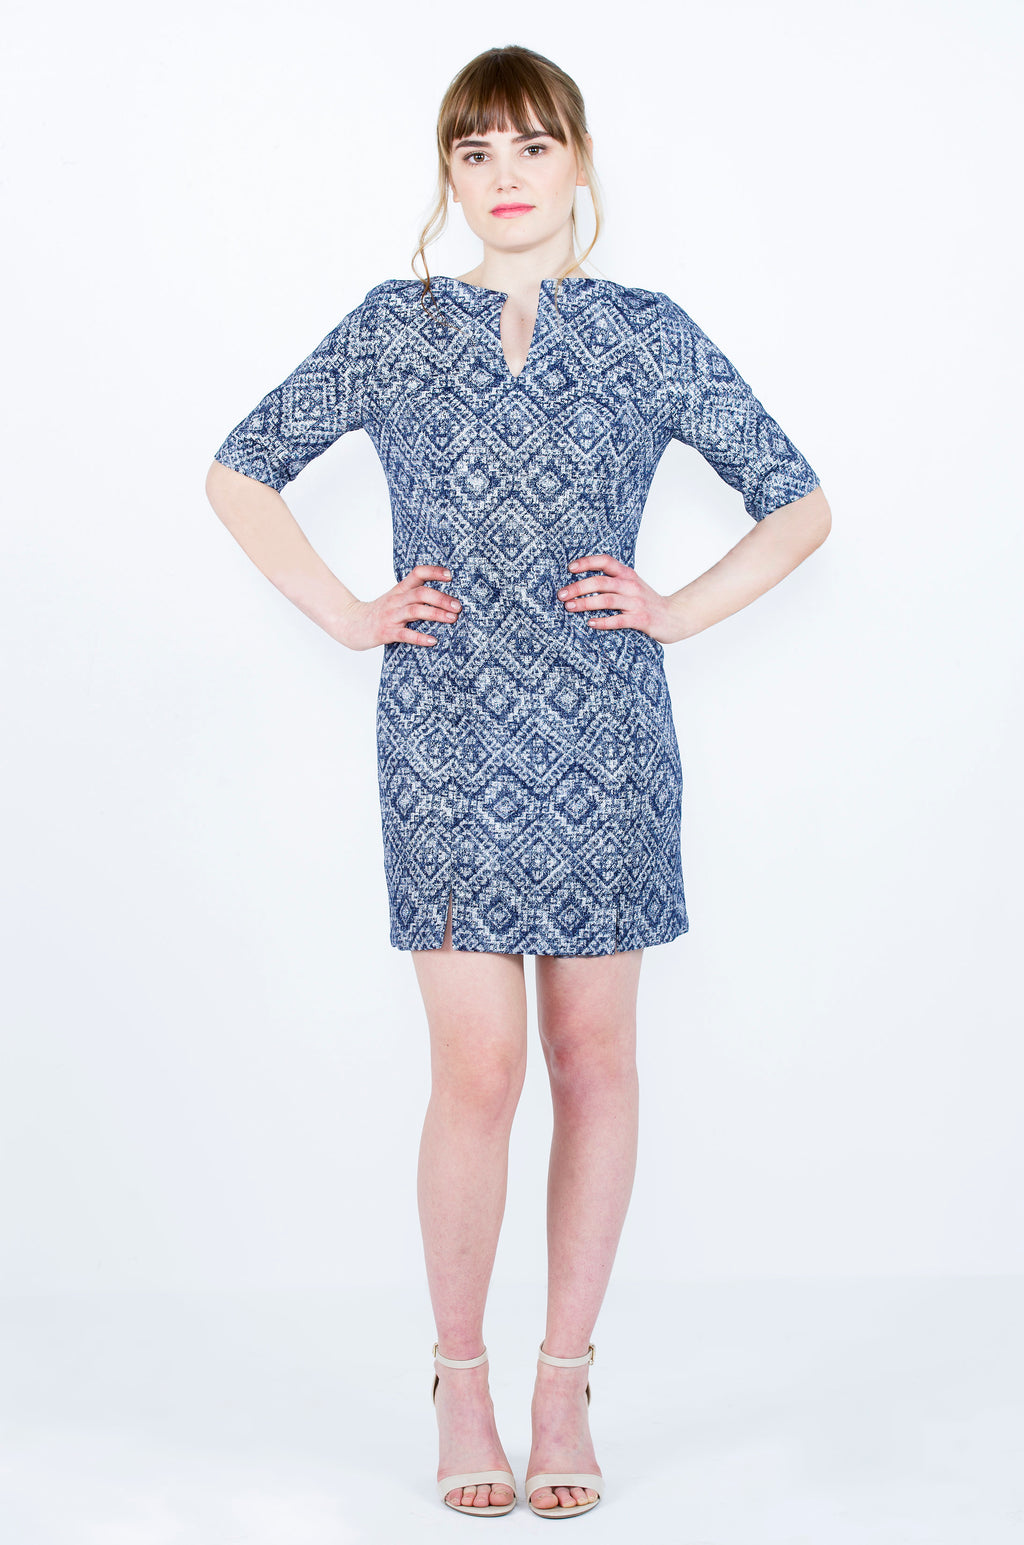 The Bateau Neck Dress